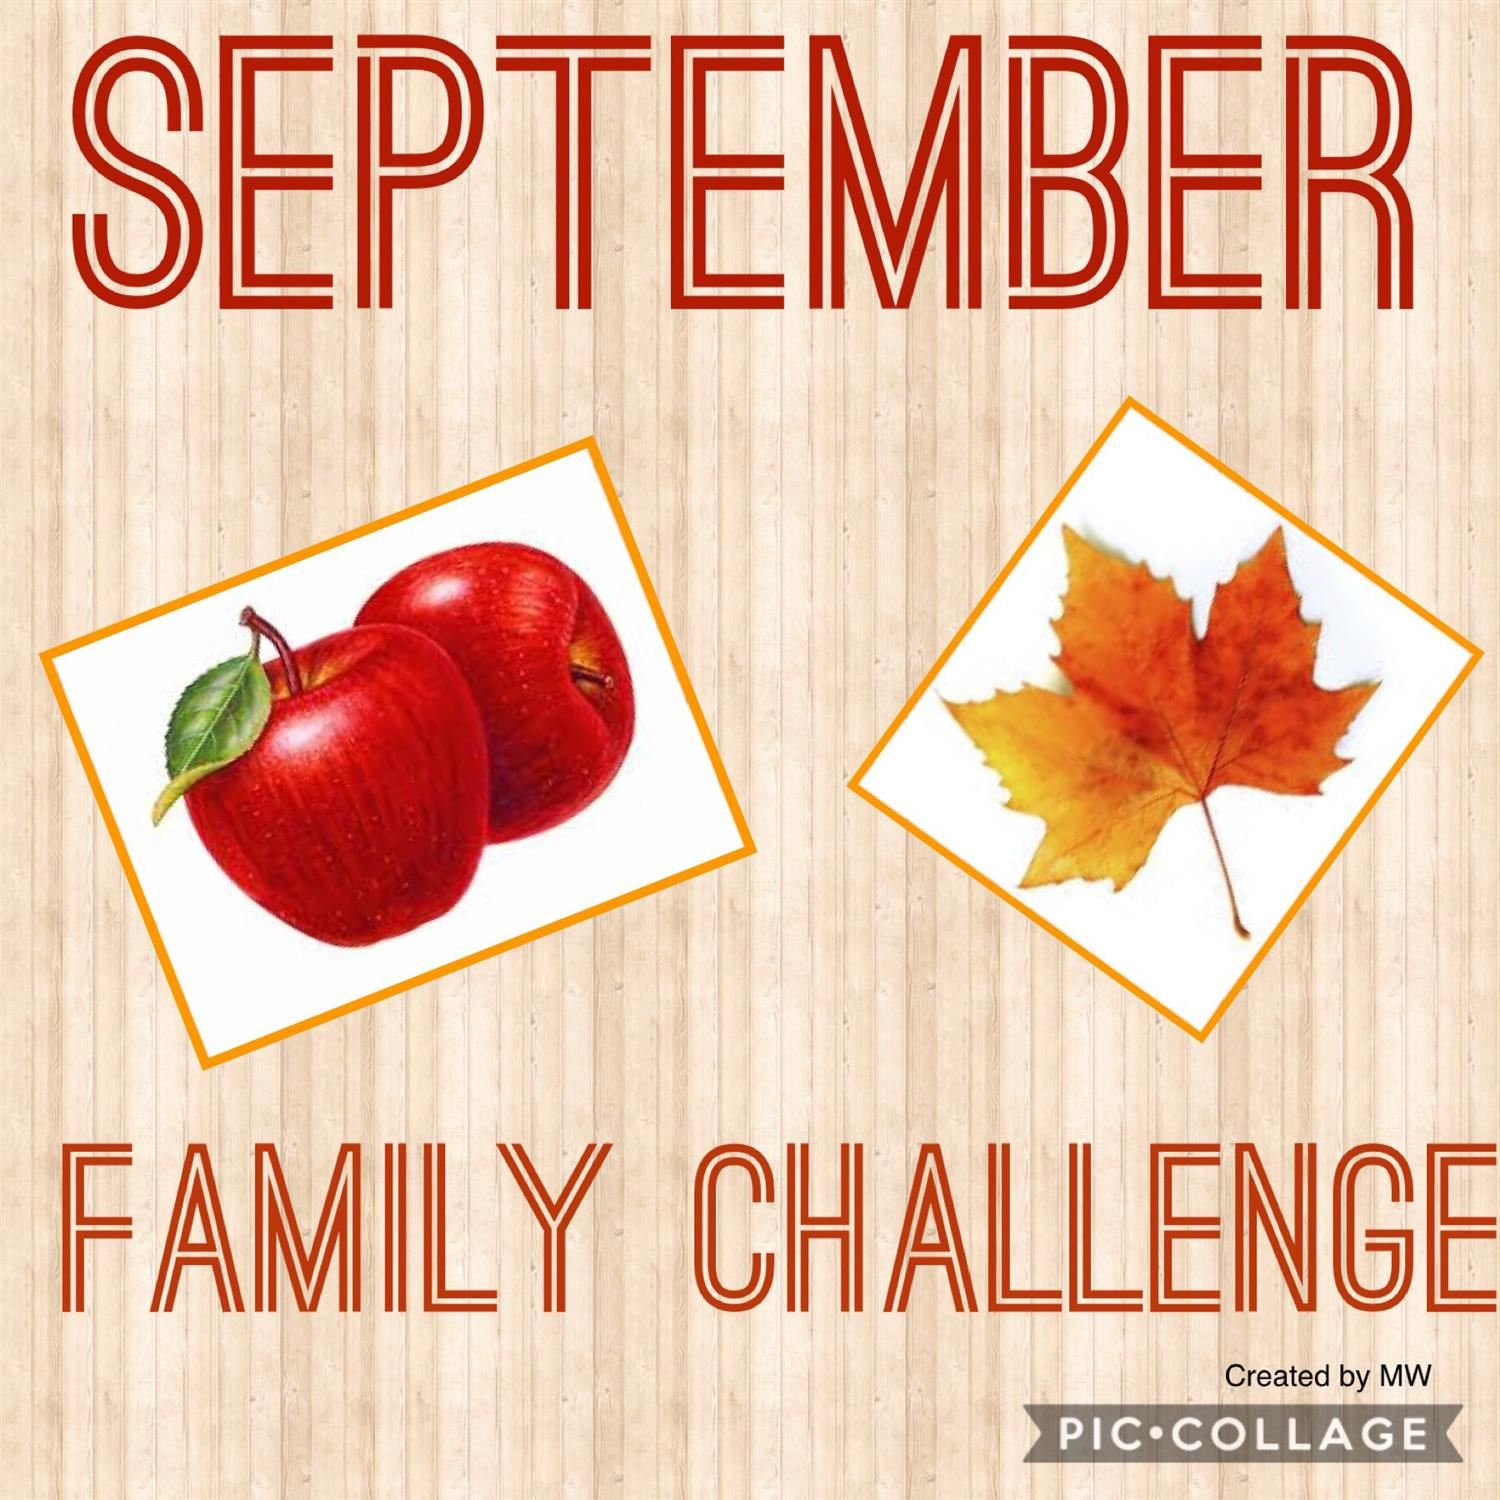 September Family Challenges - Please click Read Full Story to join us in celebrating FAMILY!